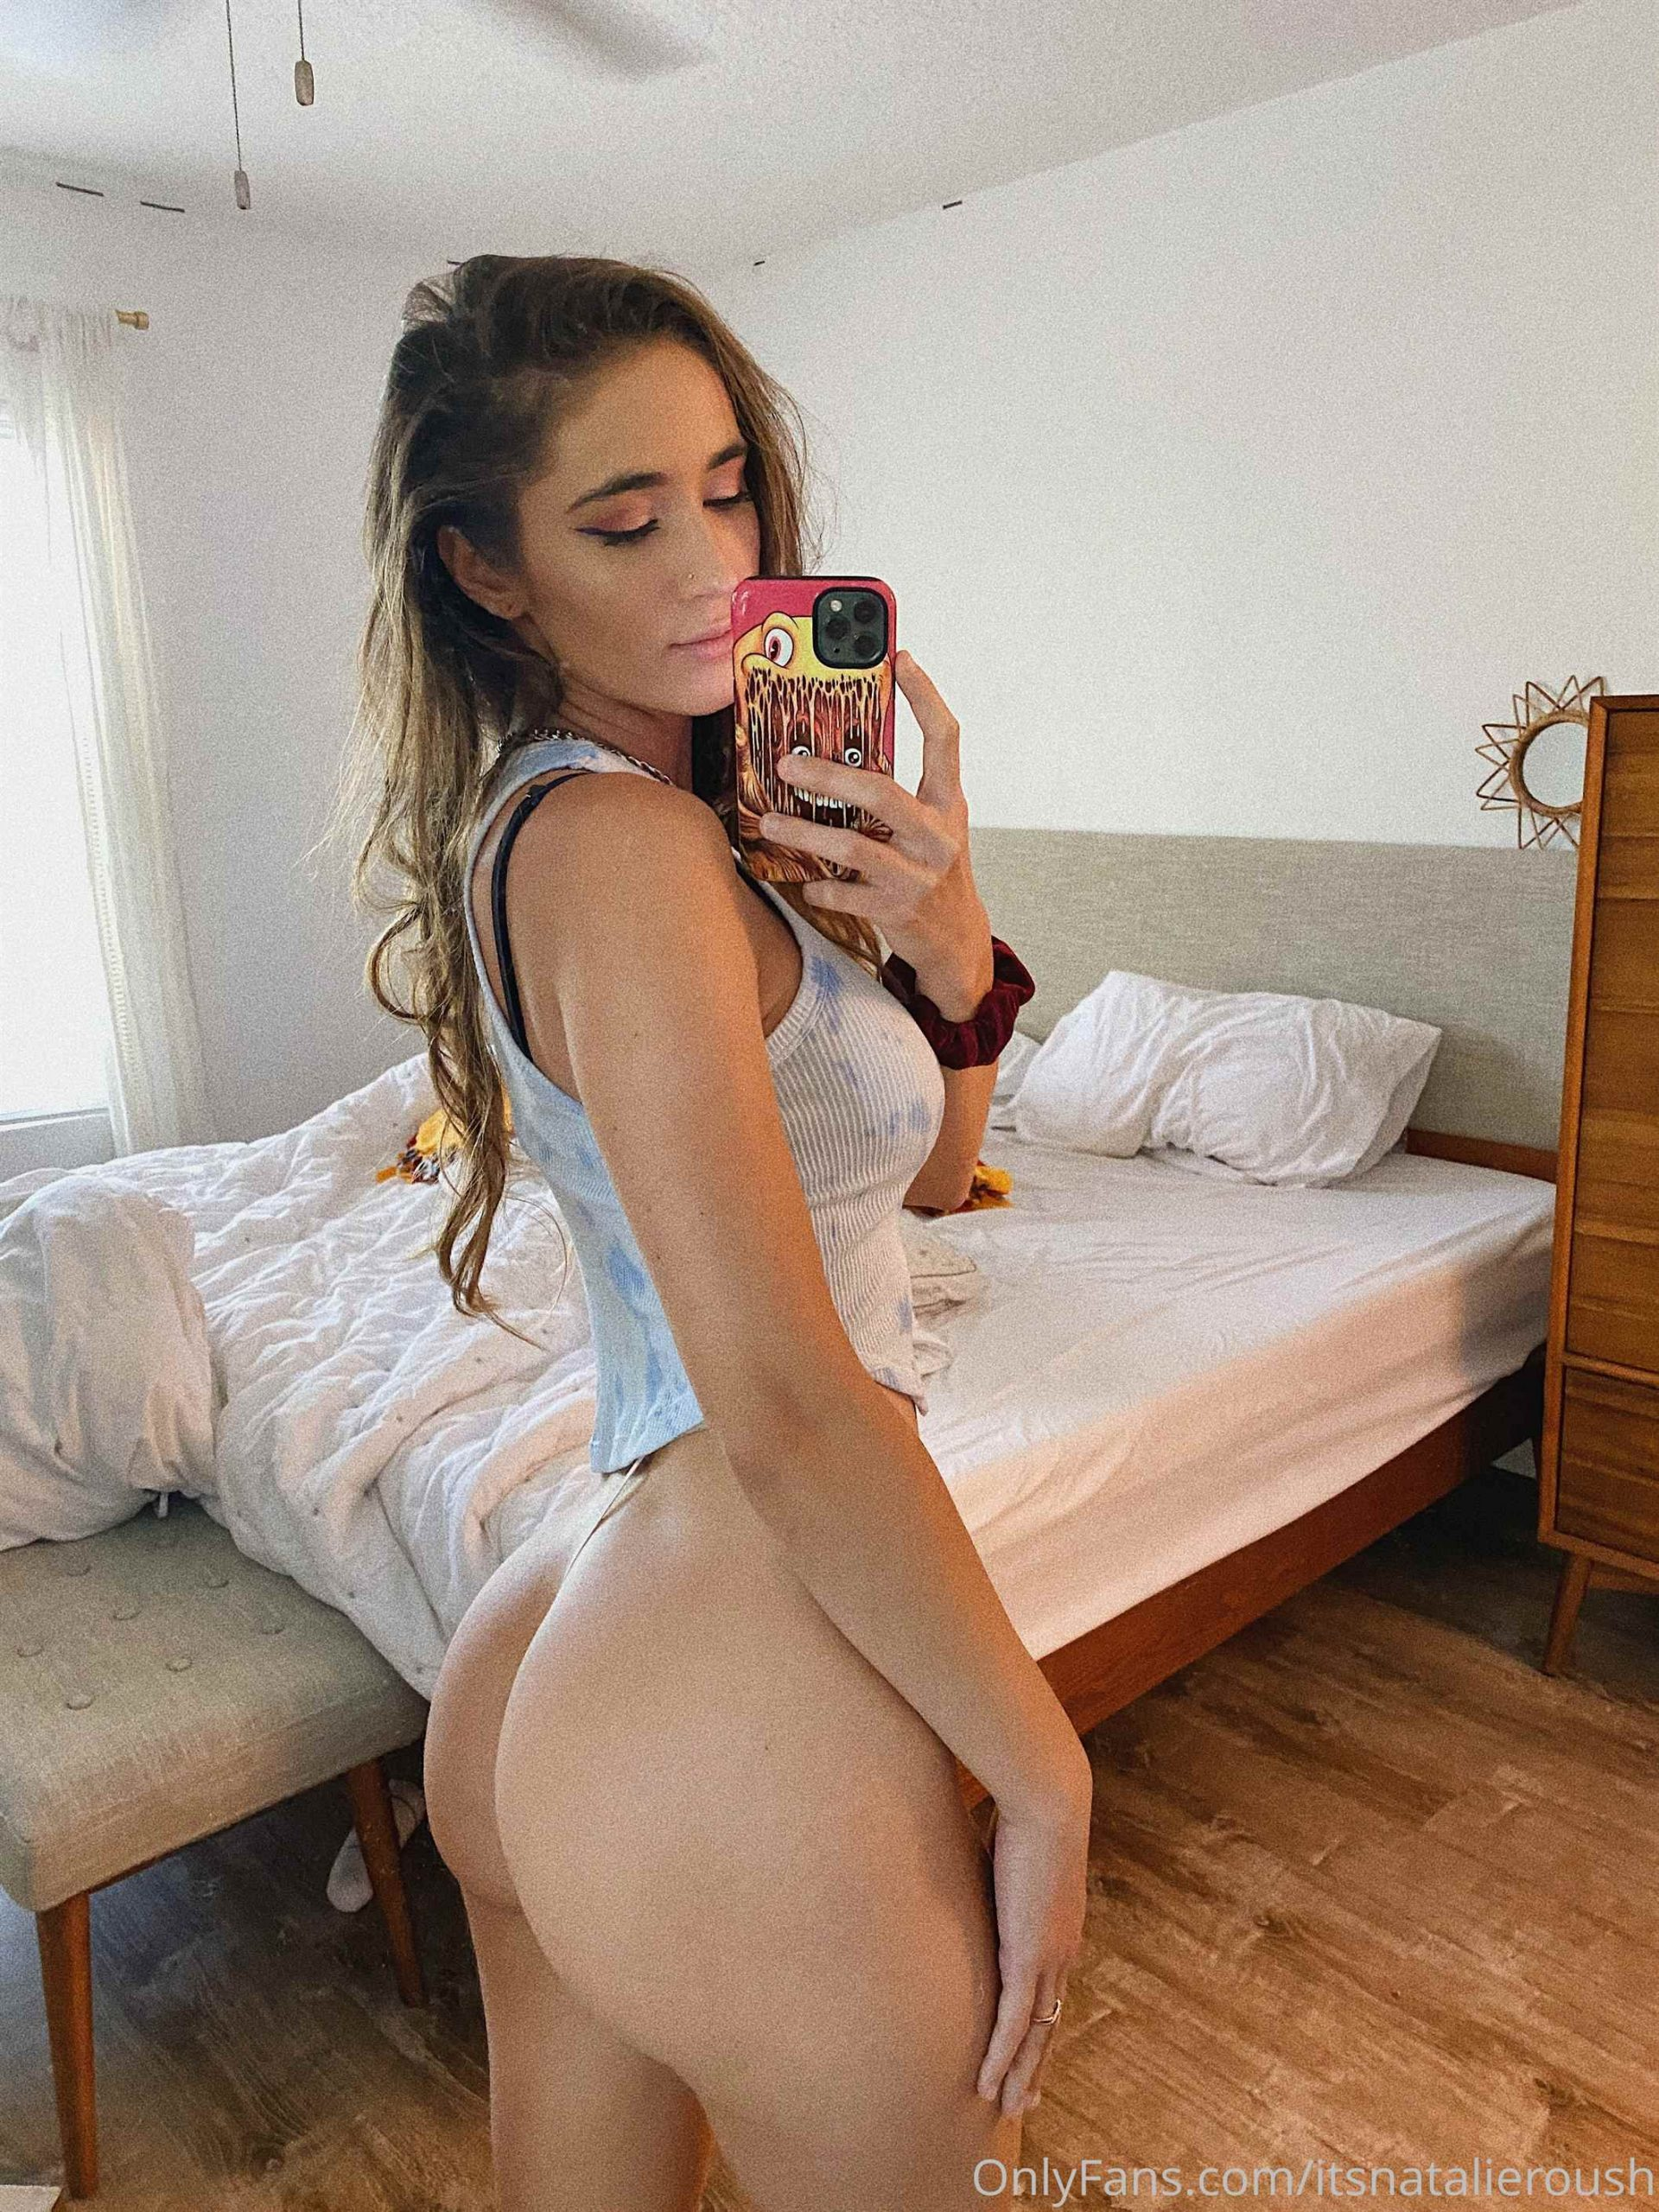 Natalie Roush Nude Leaked Onlyfans Photos 0021